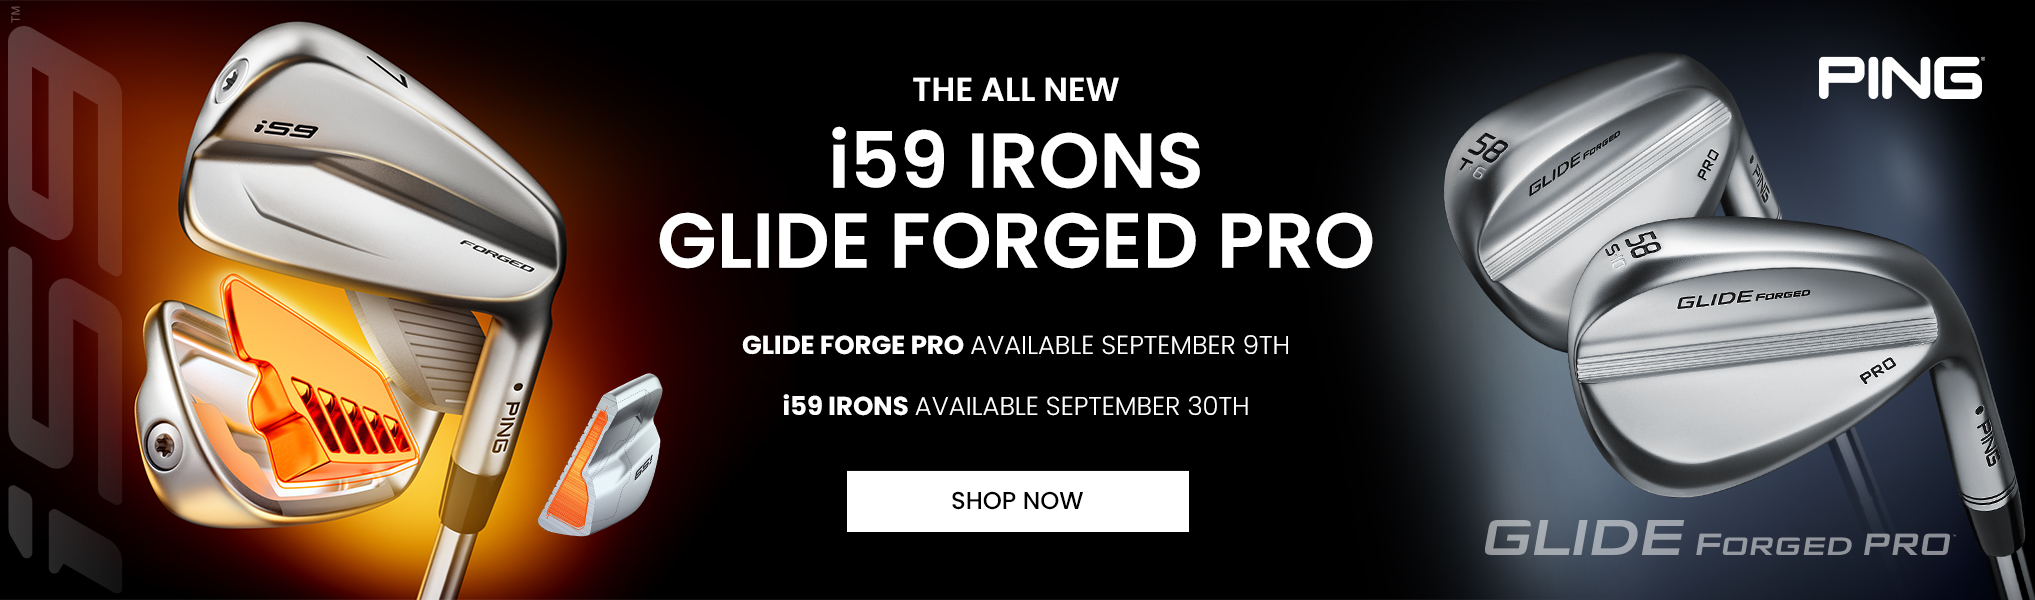 New PING i59 Irons + Glide Forged Pro Wedge - Pre-Order Today!